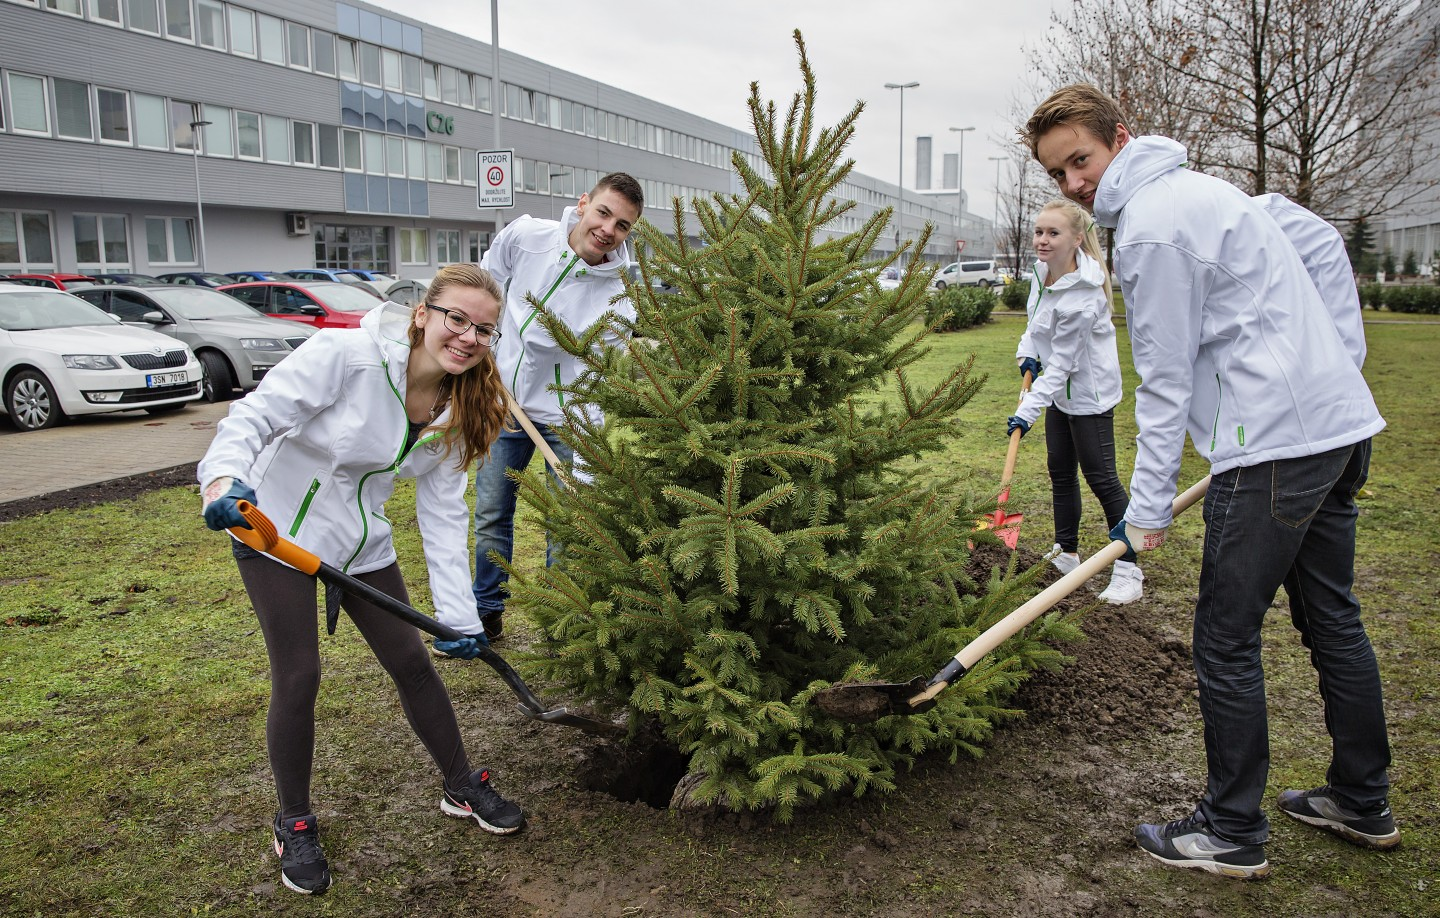 Tree party: Staff at Mladá Boleslav plant ŠKODA's 500,000th tree, a silver spruce. (Photo: ŠKODA AUTO a.s.)